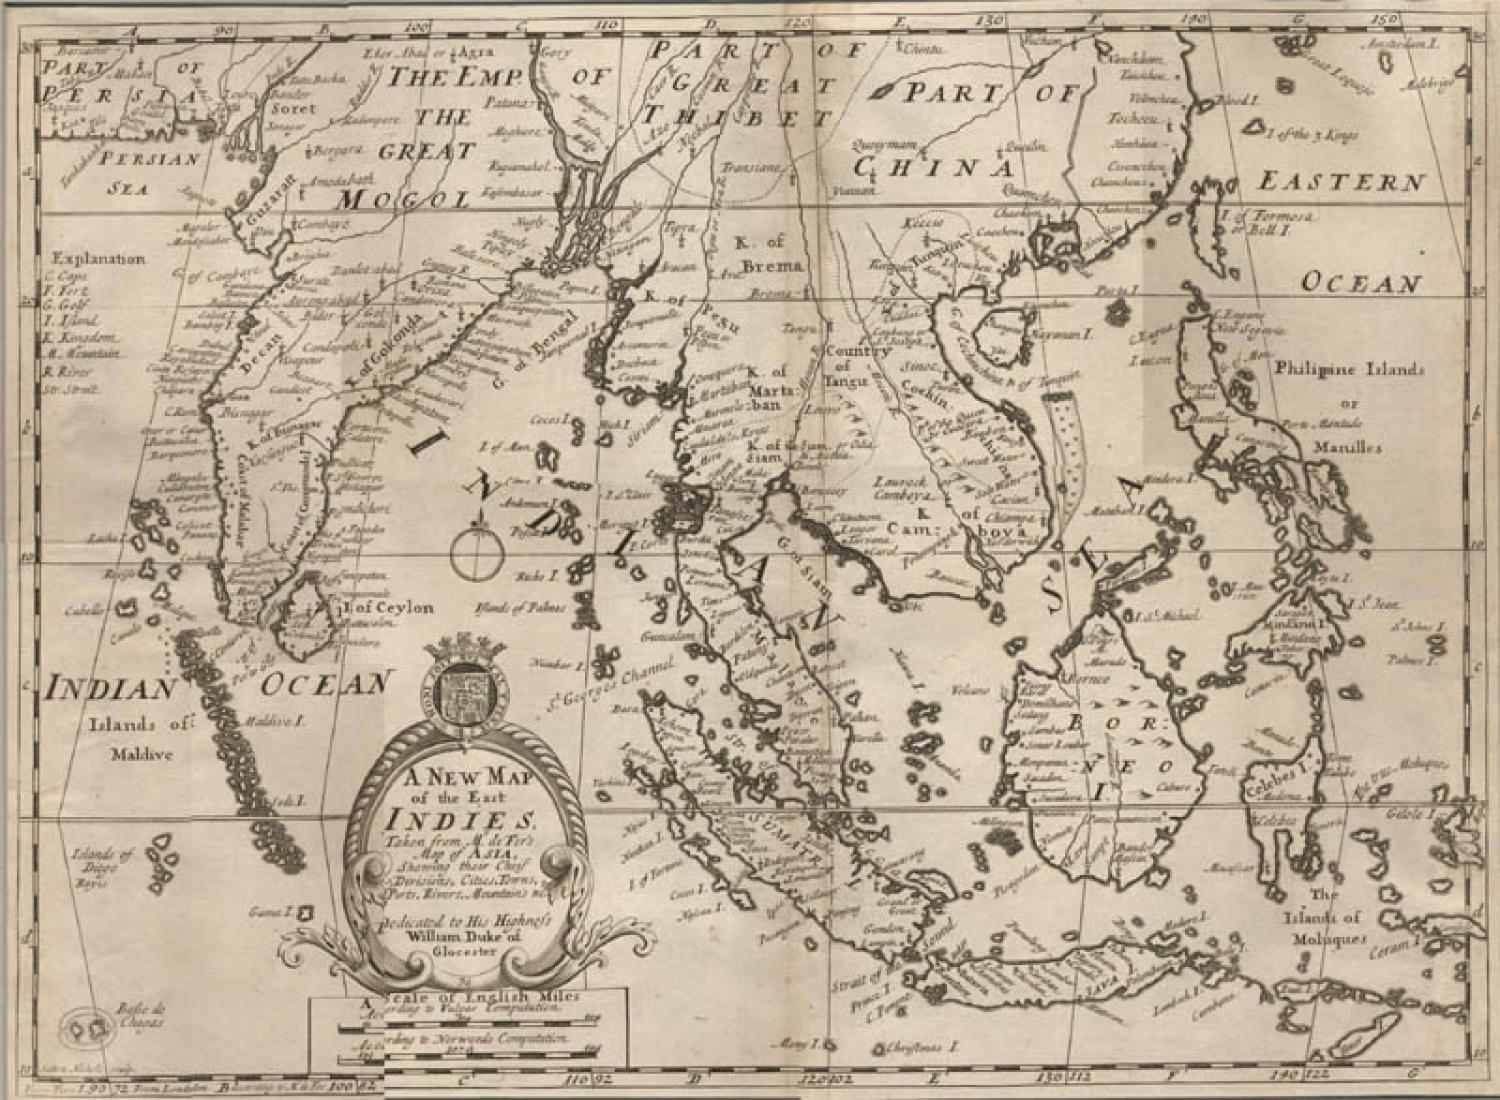 SOLD A New Map of the East Indies...